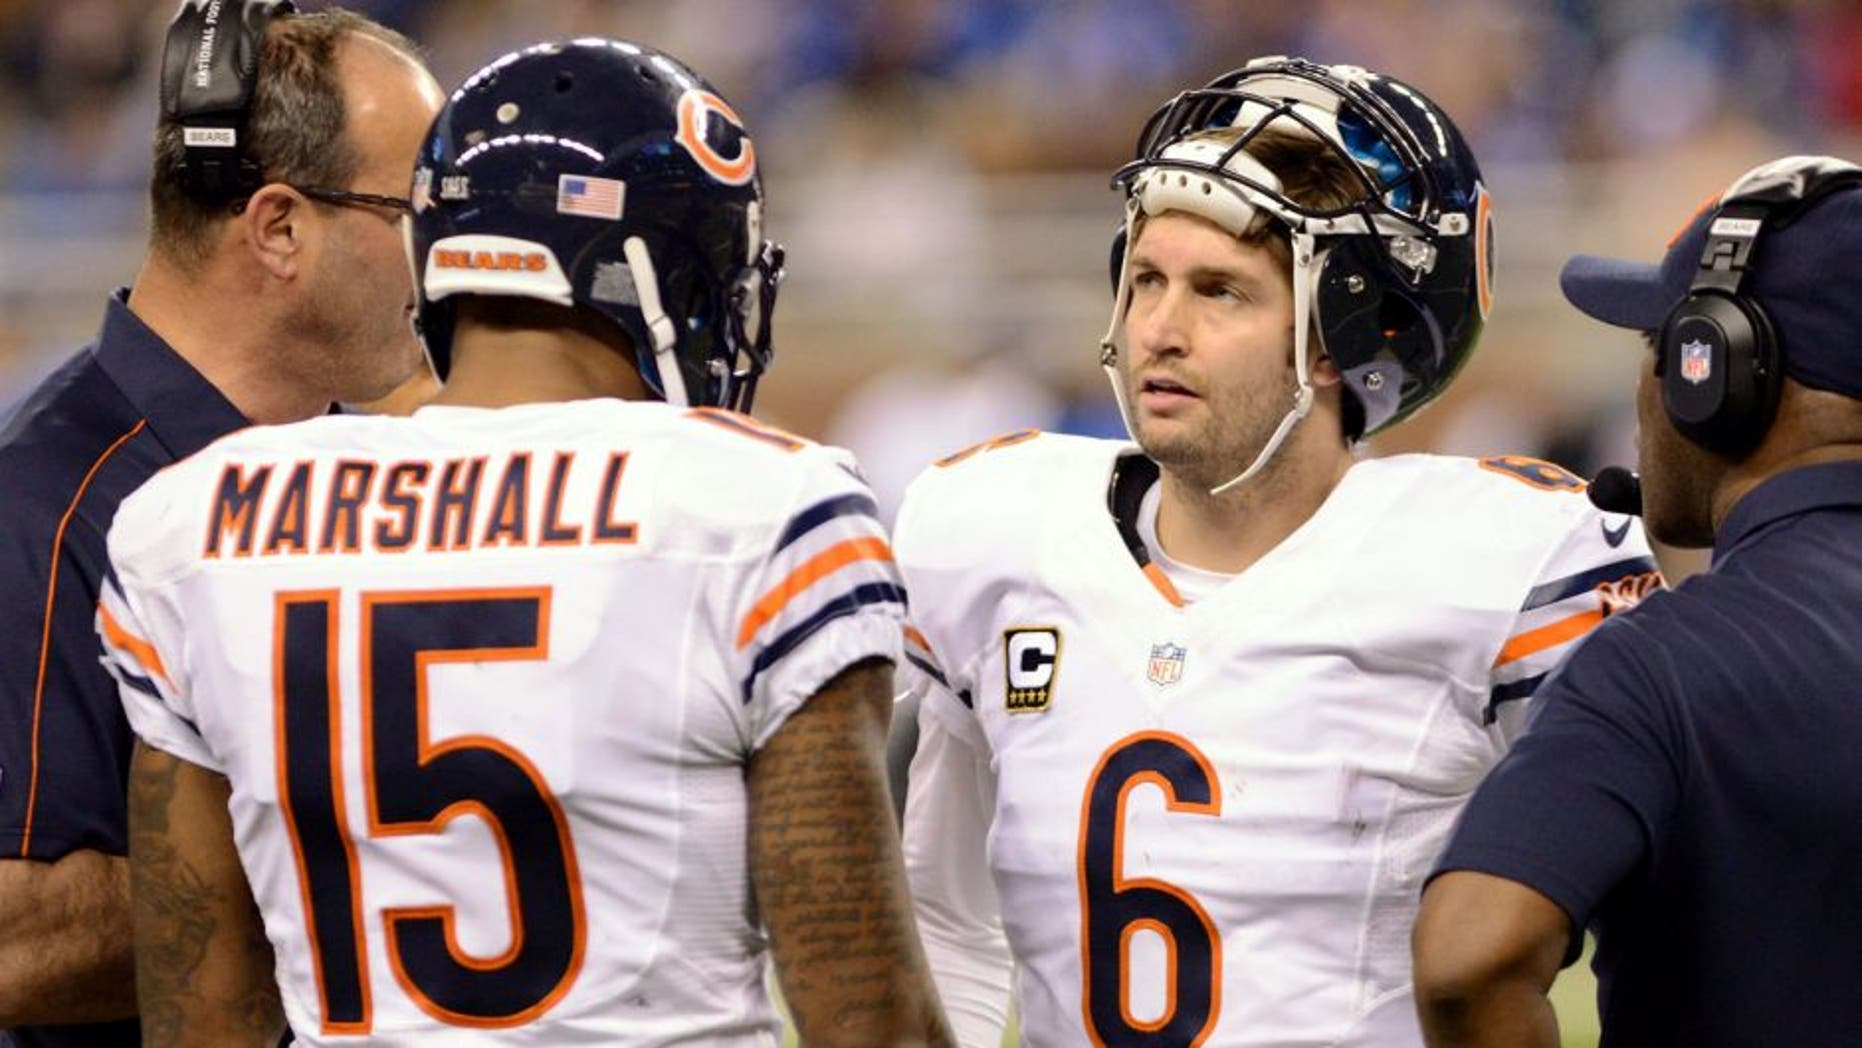 DETROIT, MI - DECEMBER 30: Brandon Marshall #15 and Jay Cutler #6 of the Chicago Bears talk with coaches on the sidelines during the game against the Detroit Lions at Ford Field on December 30, 2012 in Detroit, Michigan. The Bears defeated the Lions 26-24. (Photo by Mark Cunningham/Detroit Lions/Getty Images)